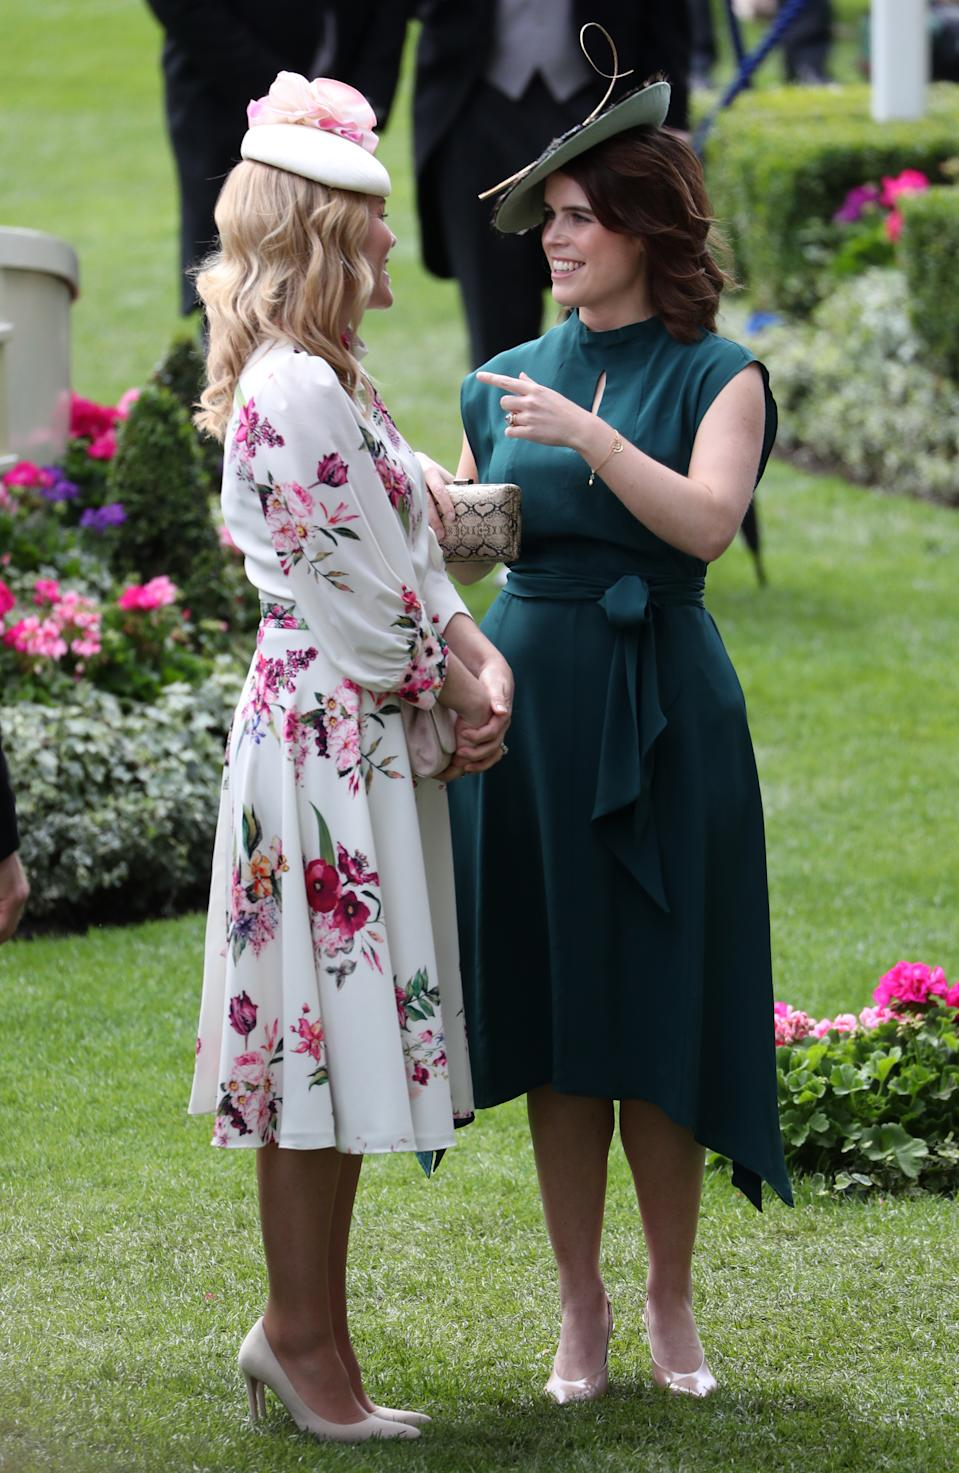 """Princess Eugenie wore Samantha Cameron's brand <a href=""""https://www.cefinn.com/uk/dresses/silk-asymmetric-hem-midi-dress-with-keyhole-teal"""" rel=""""nofollow noopener"""" target=""""_blank"""" data-ylk=""""slk:Cefinn"""" class=""""link rapid-noclick-resp"""">Cefinn</a> - their Mia silk asymmetric hem midi dress with keyhold detailing with a feathered hat by Bundle MacLaren Millinery, nude courts and a snakeskin clutch. <em>[Photo: PA]</em>"""